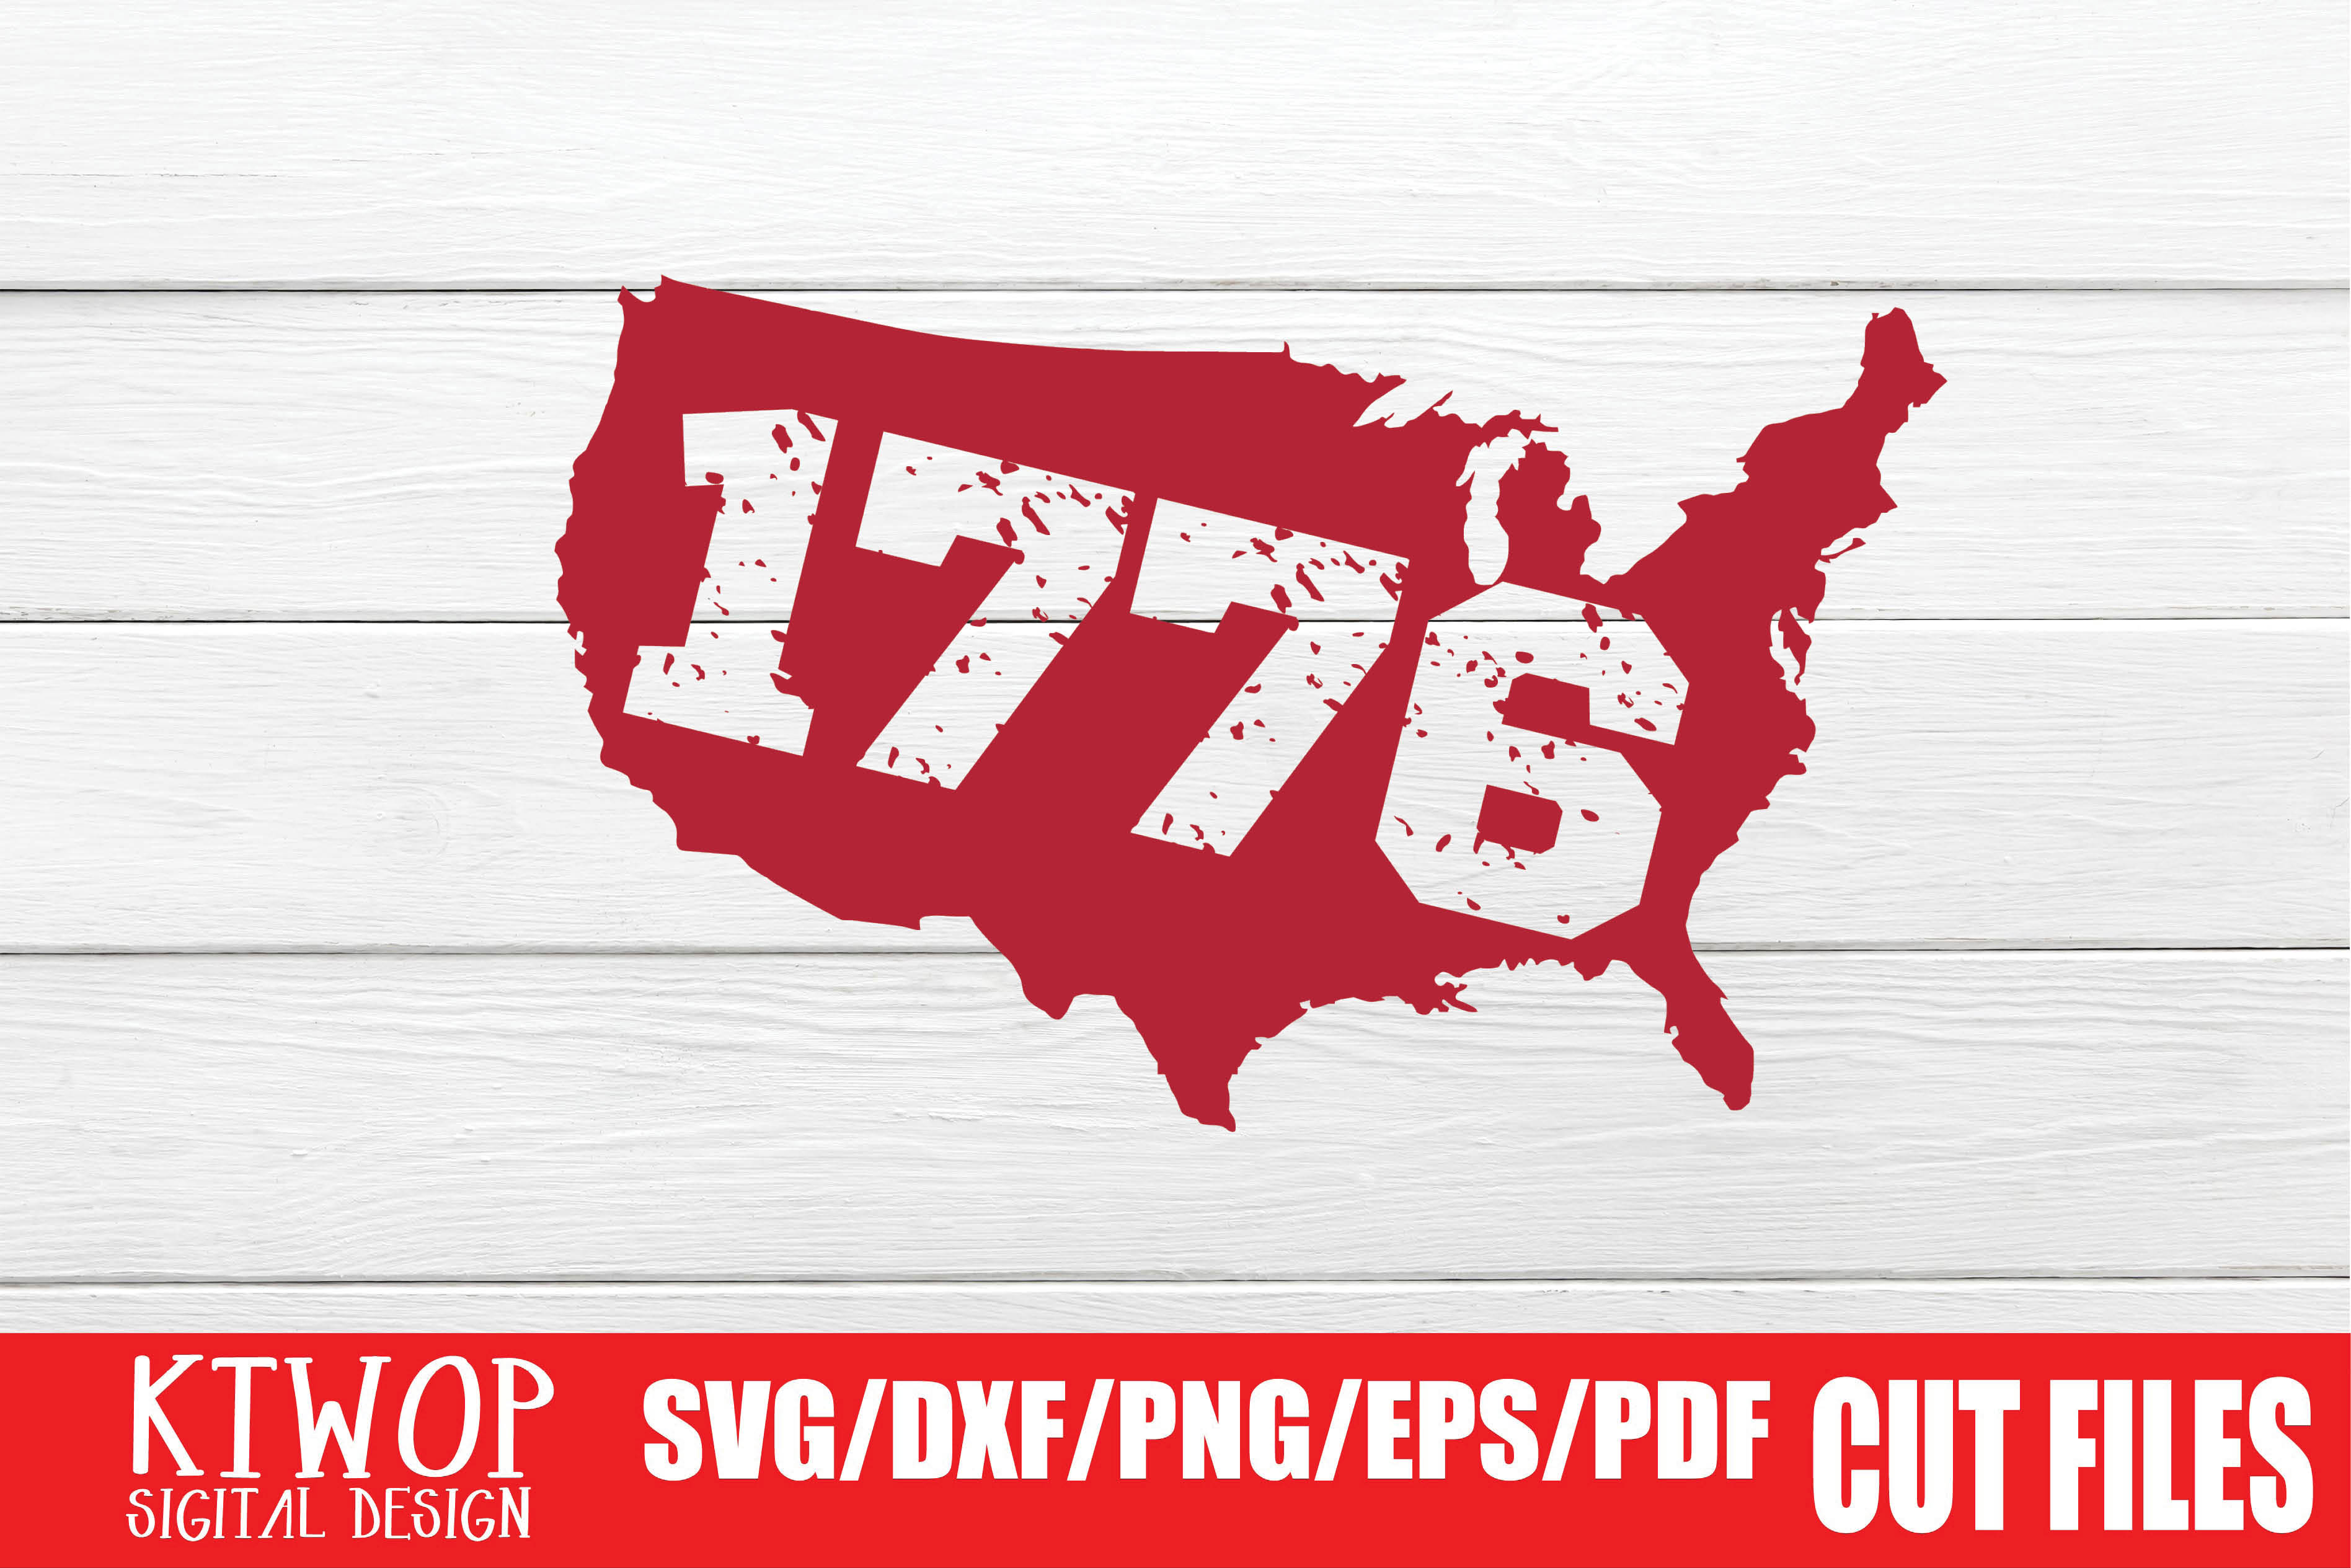 Download Free 1776 Graphic By Ktwop Creative Fabrica for Cricut Explore, Silhouette and other cutting machines.